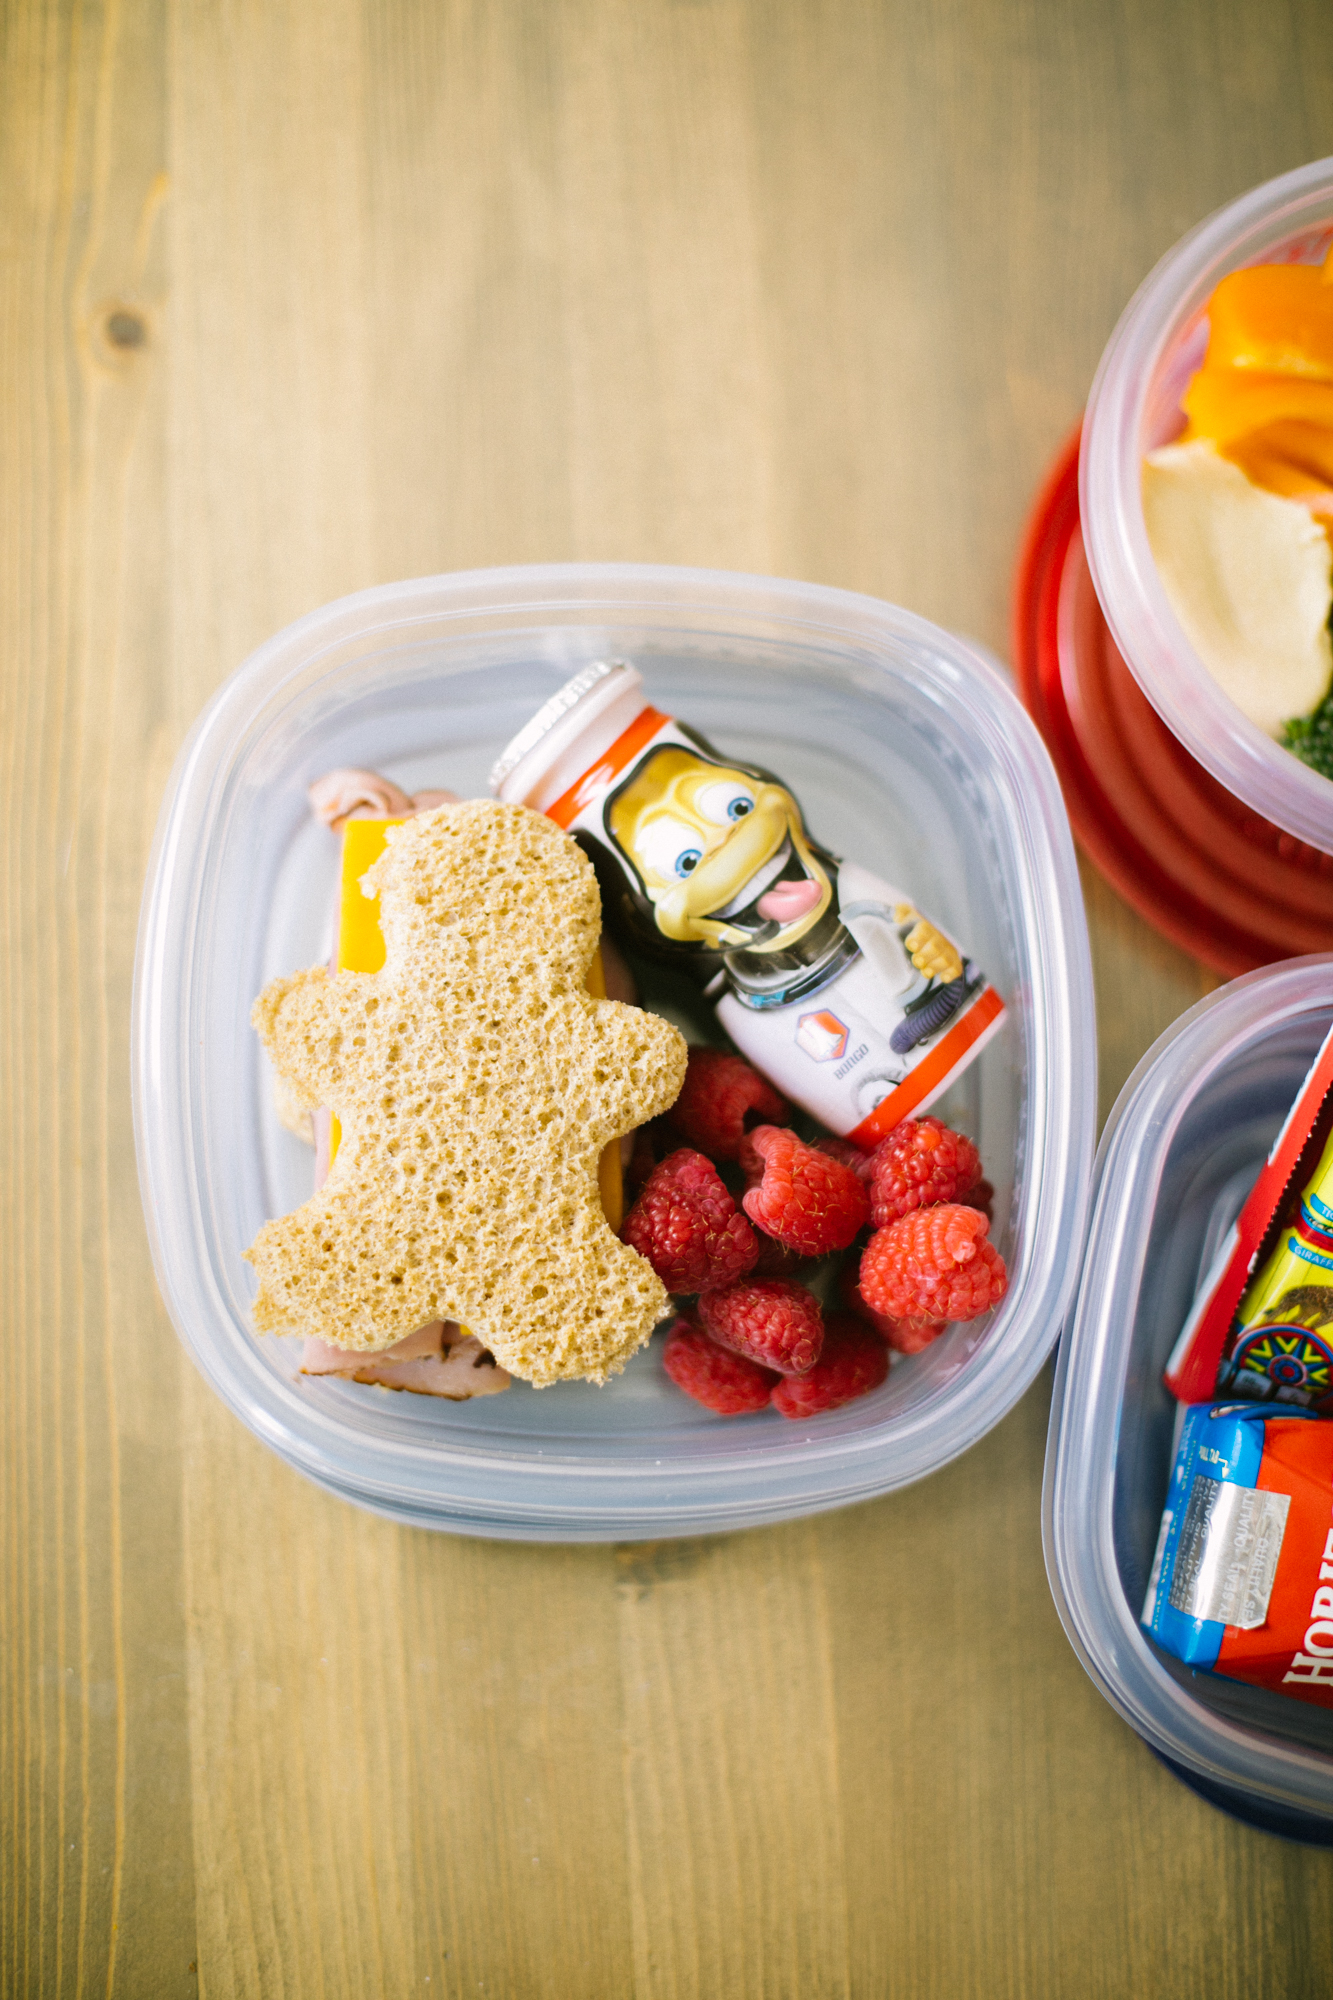 Back to School Lunches recipes featured by popular Las Vegas life and style bloggers, Life of a Sister